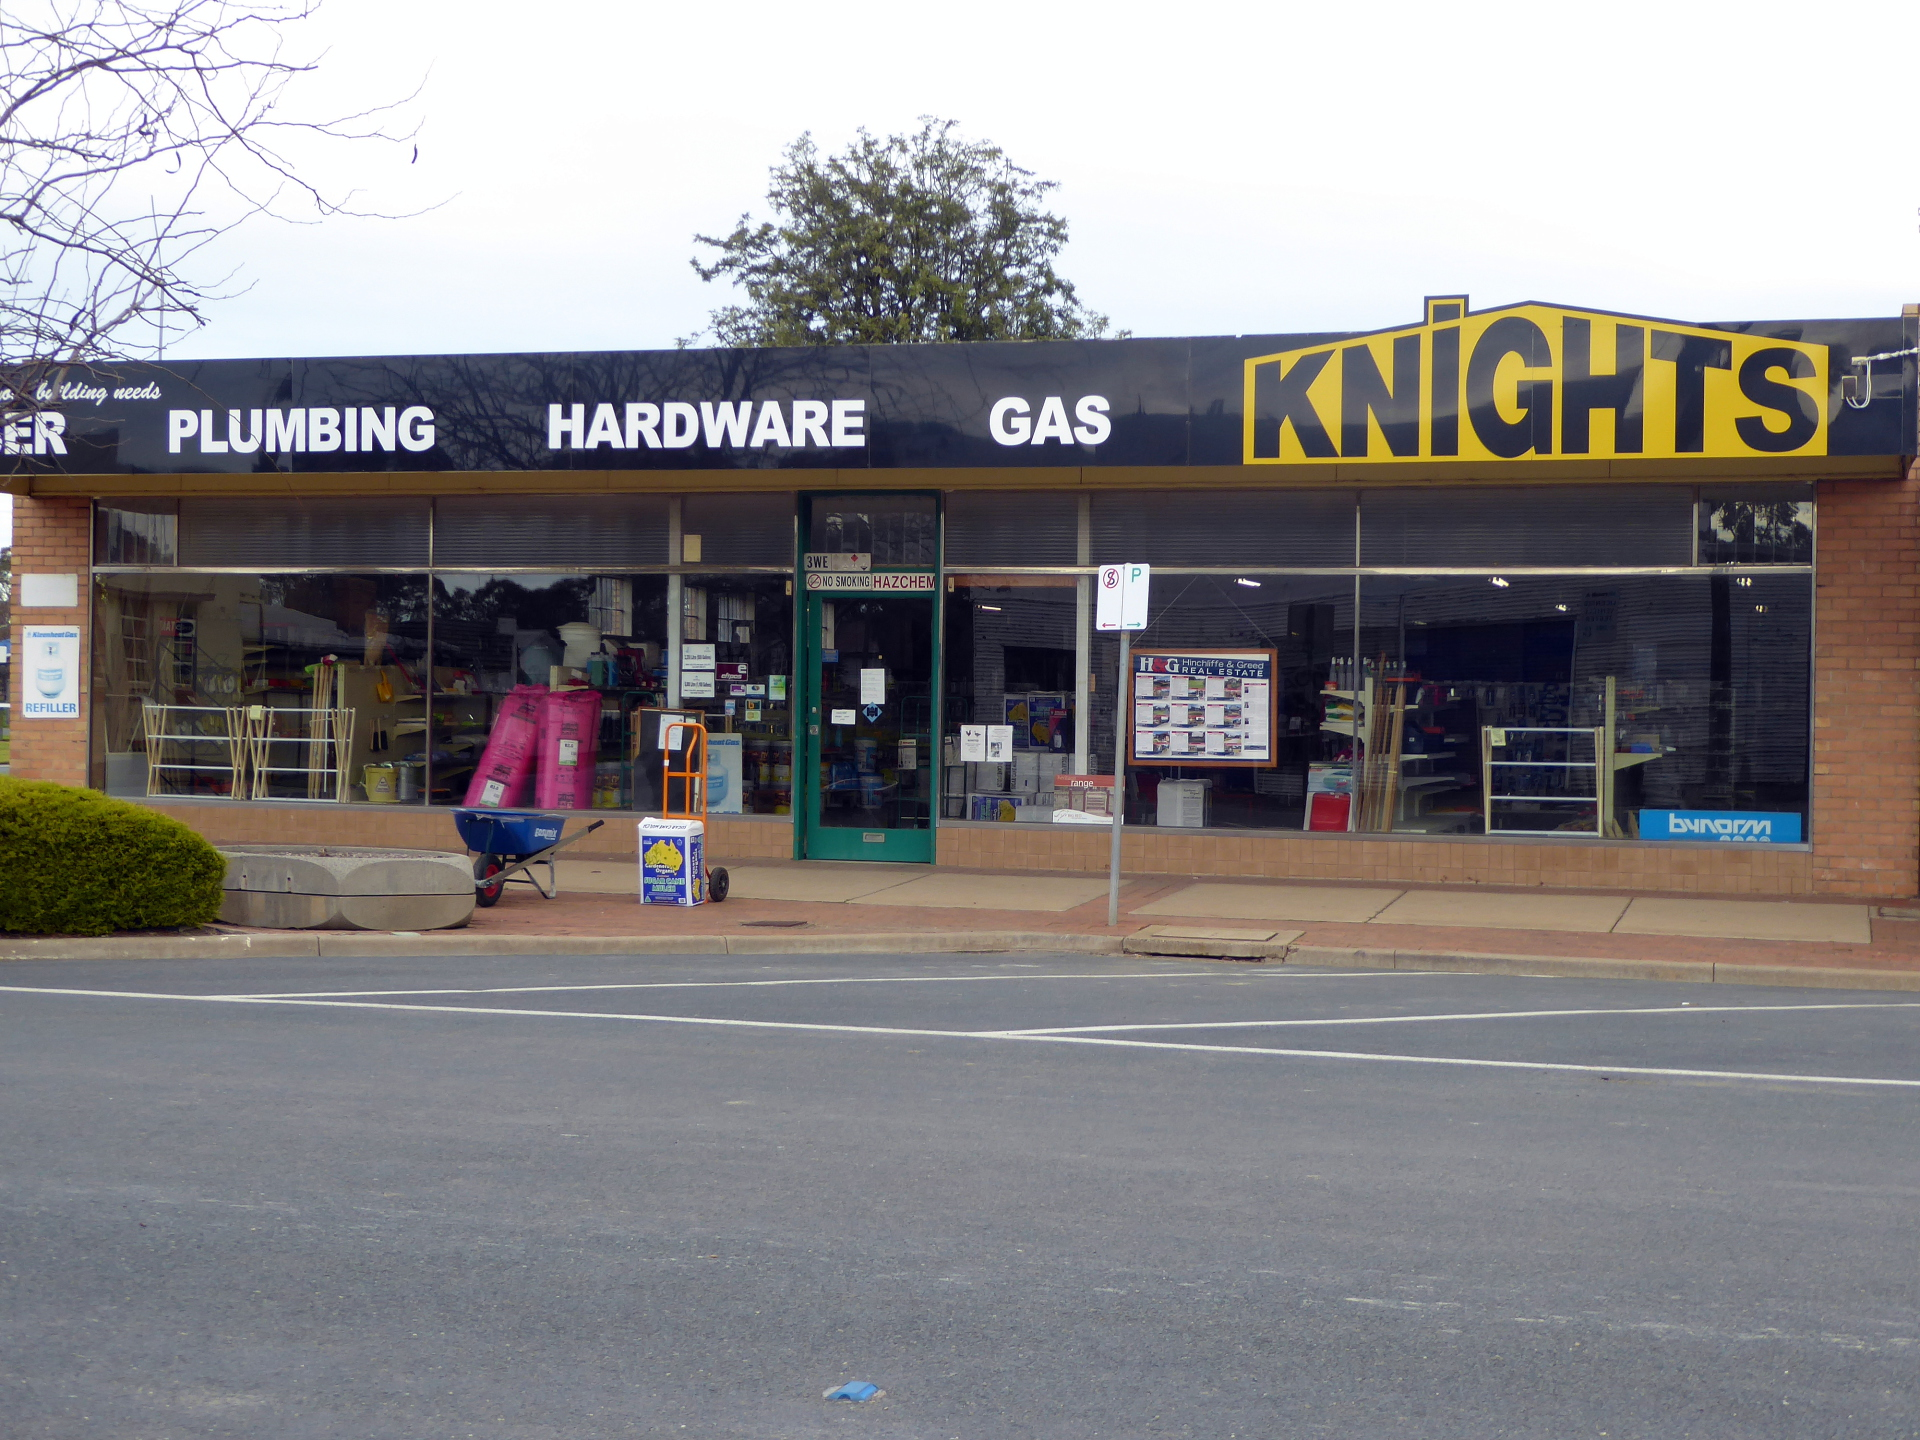 Knights Hardware Store